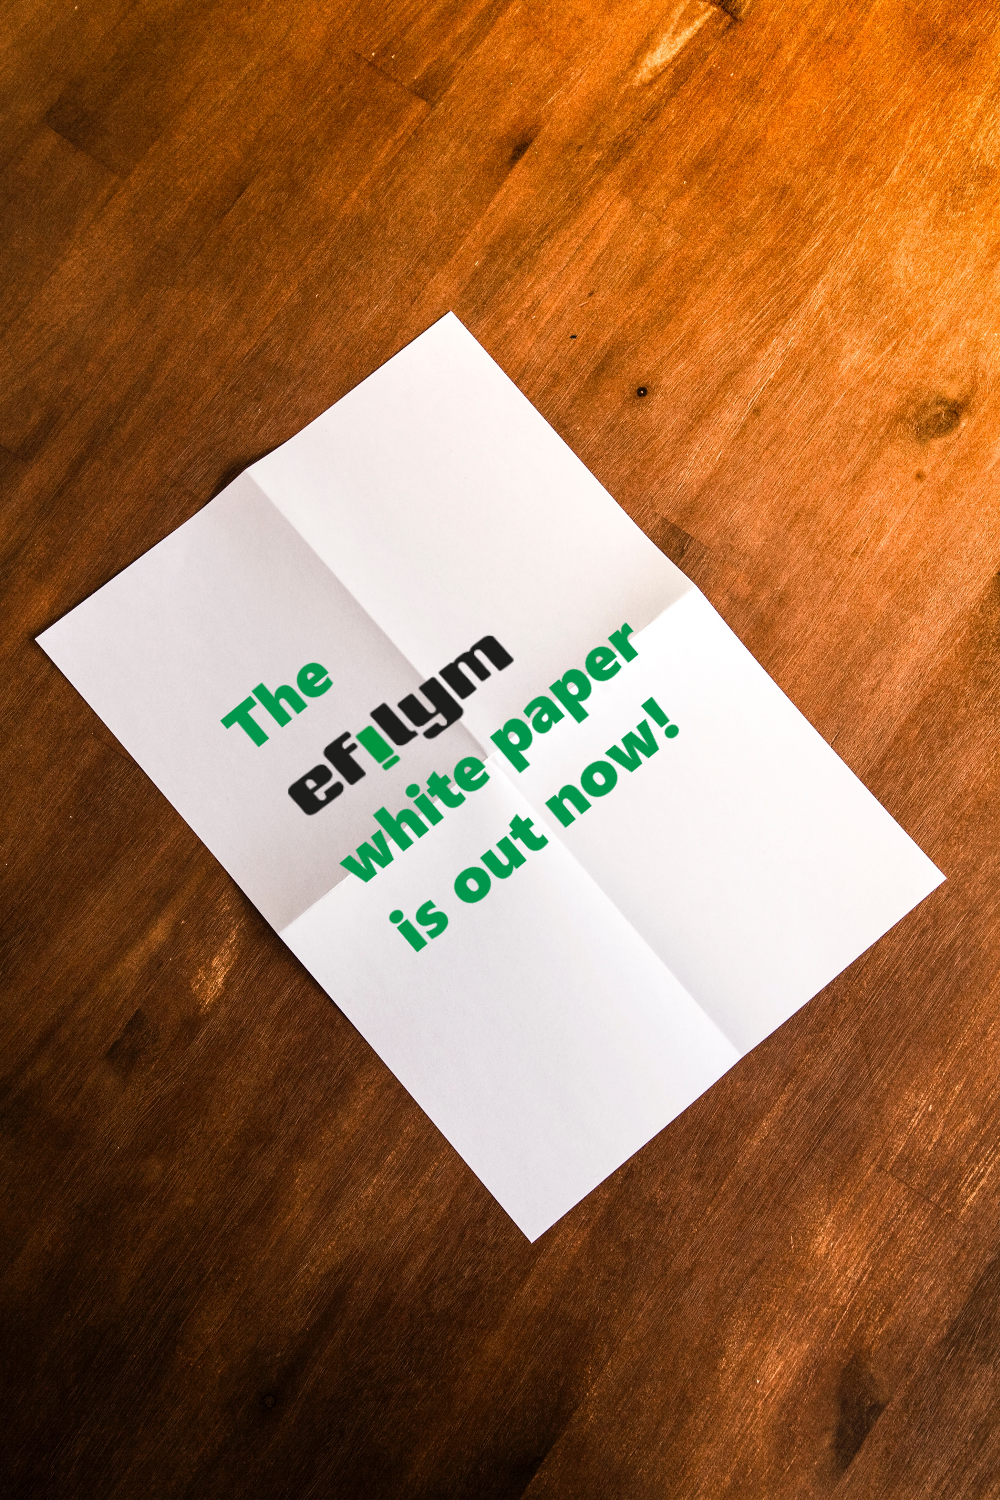 The EFILYM White Paper - Out Now!